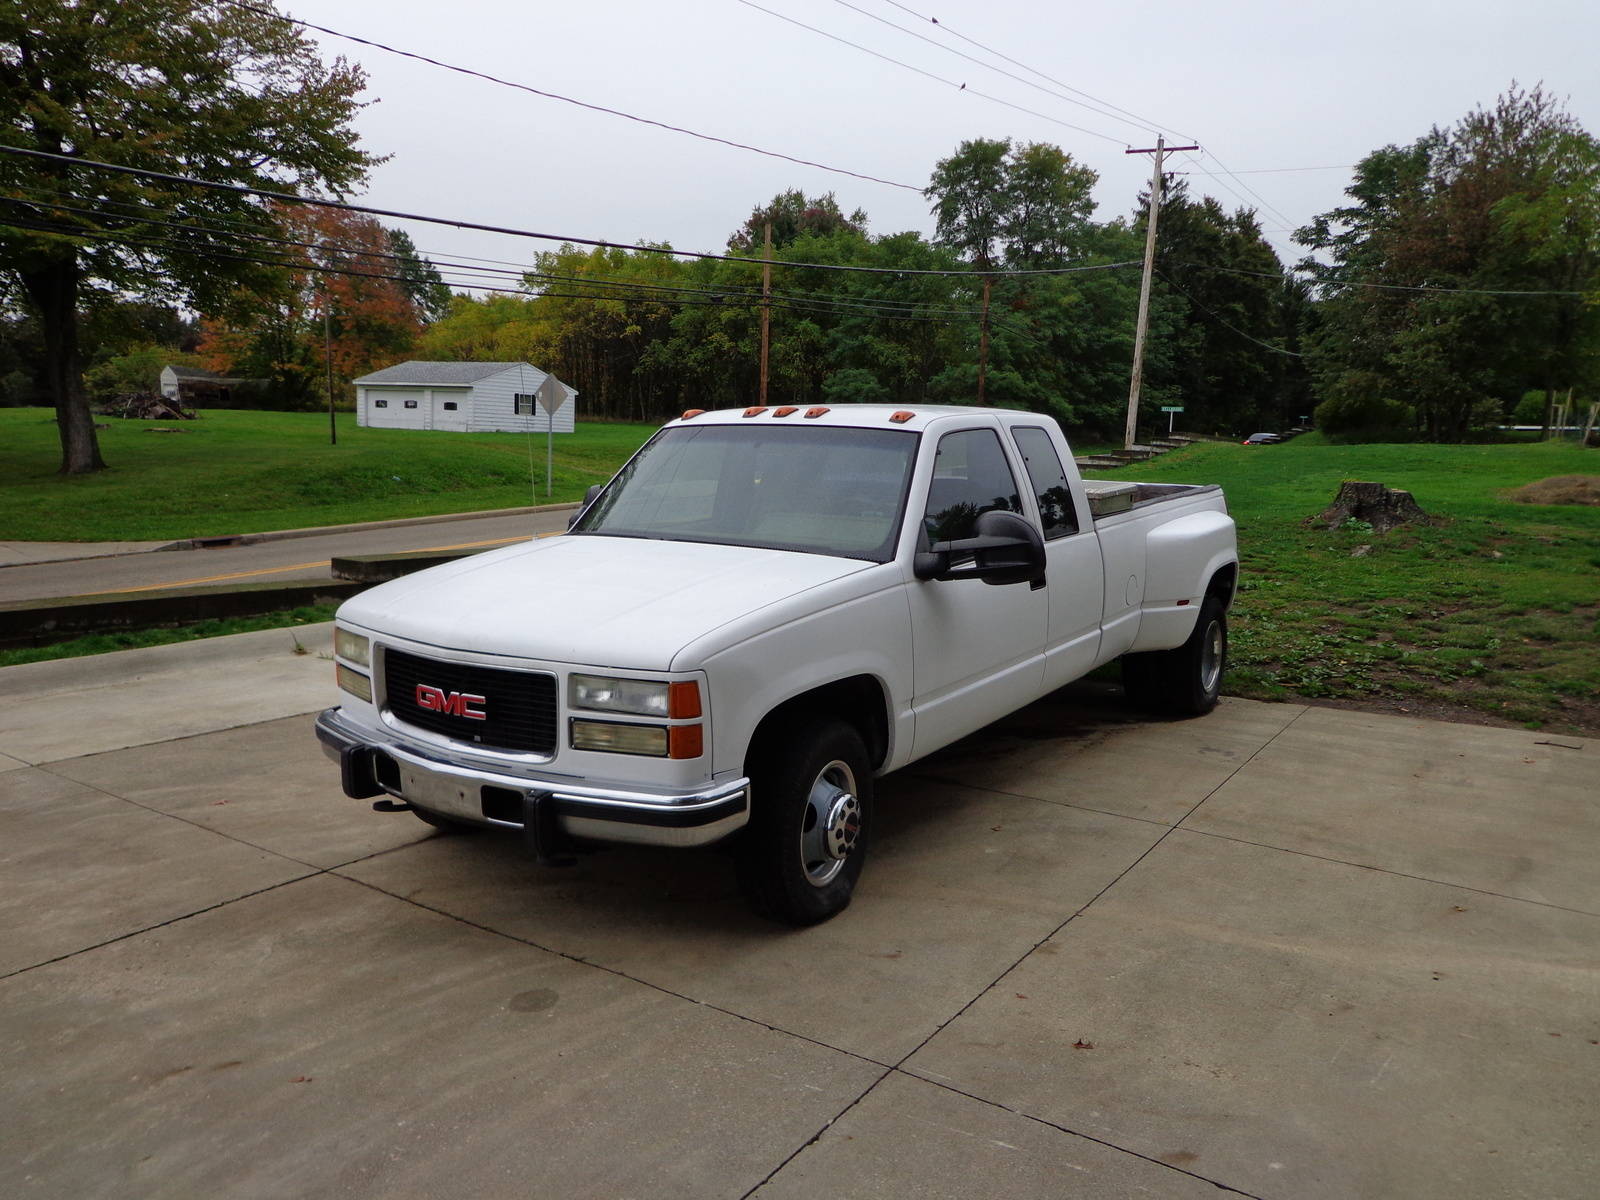 1992 gmc sierra 3500 test drive review cargurus 1992 gmc sierra 3500 test drive review